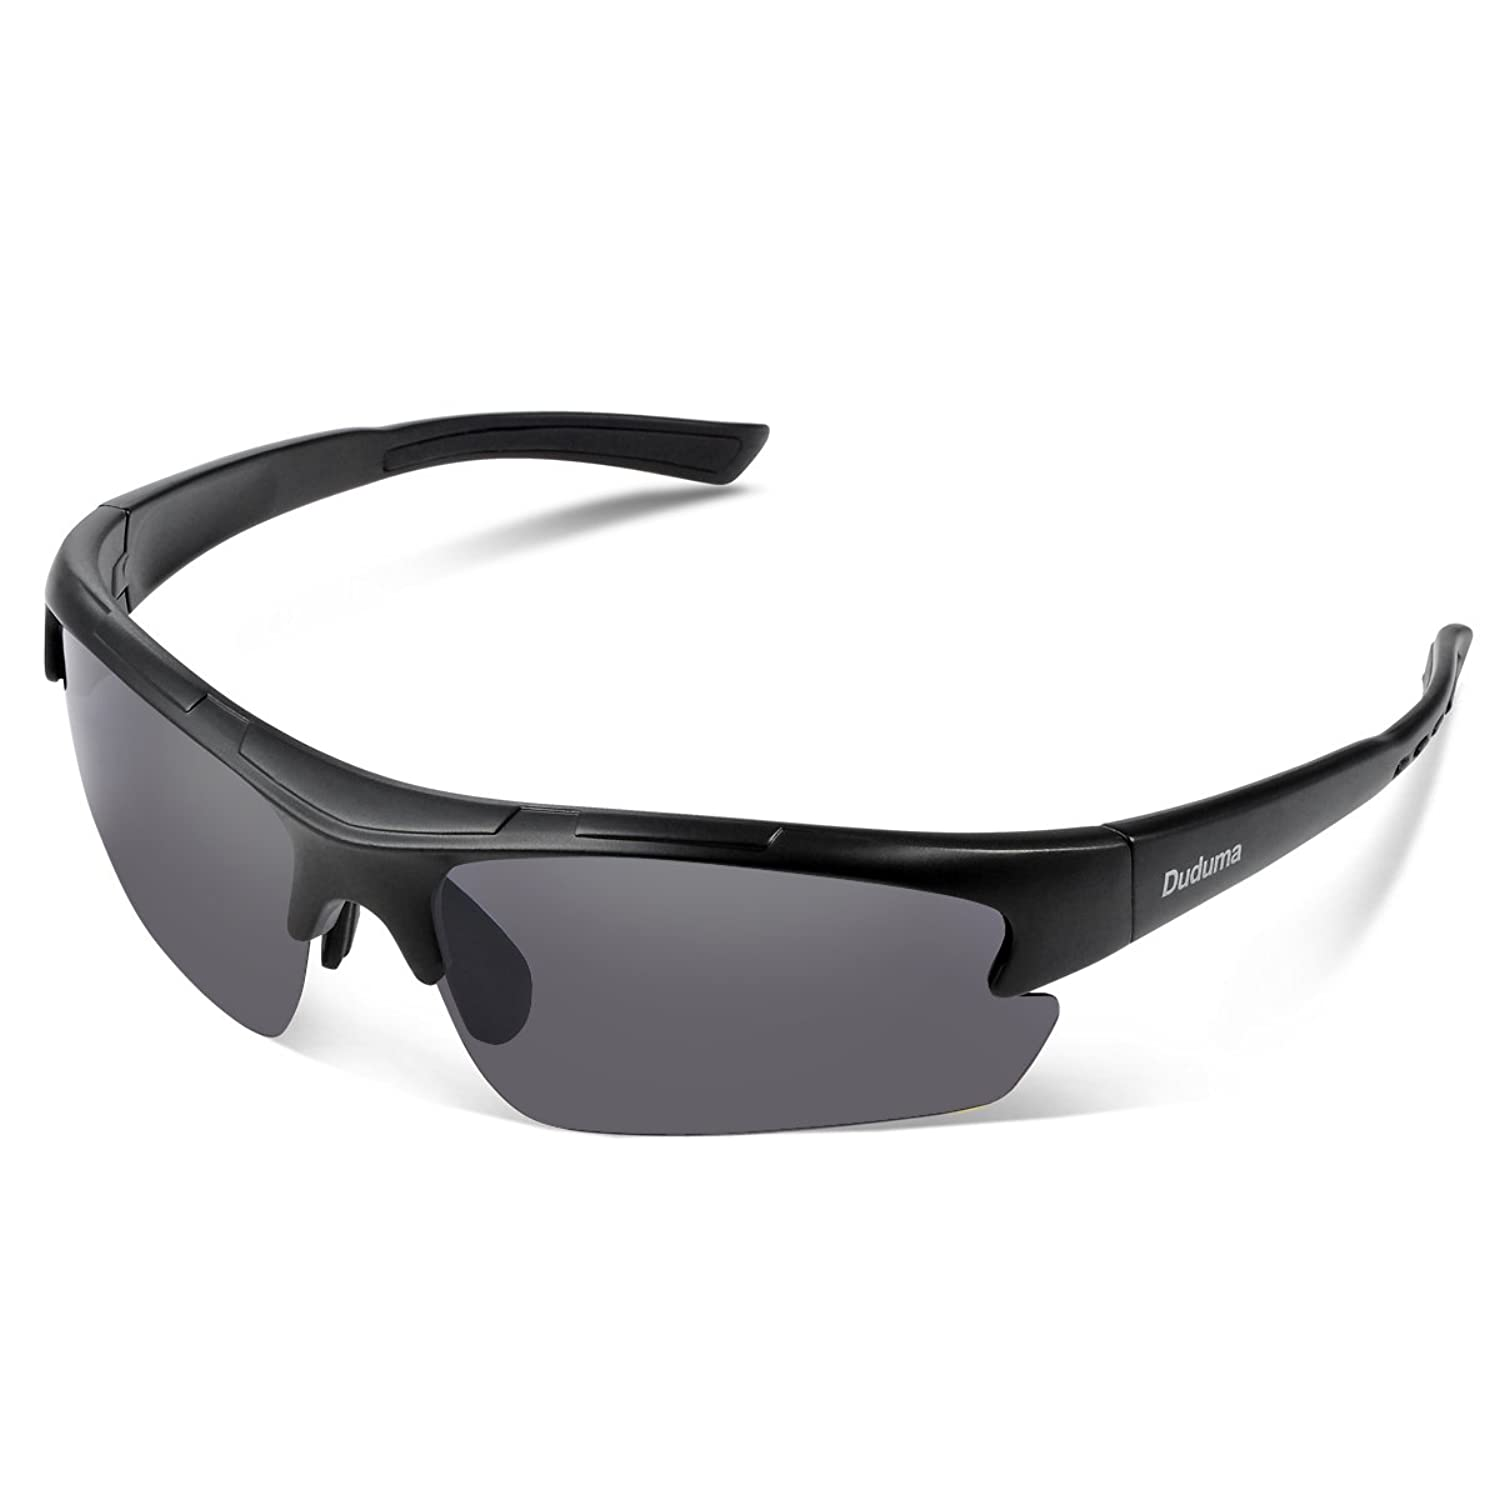 sunglasses for men sports  Amazon.com: Sports Sunglasses - Accessories: Sports \u0026 Outdoors